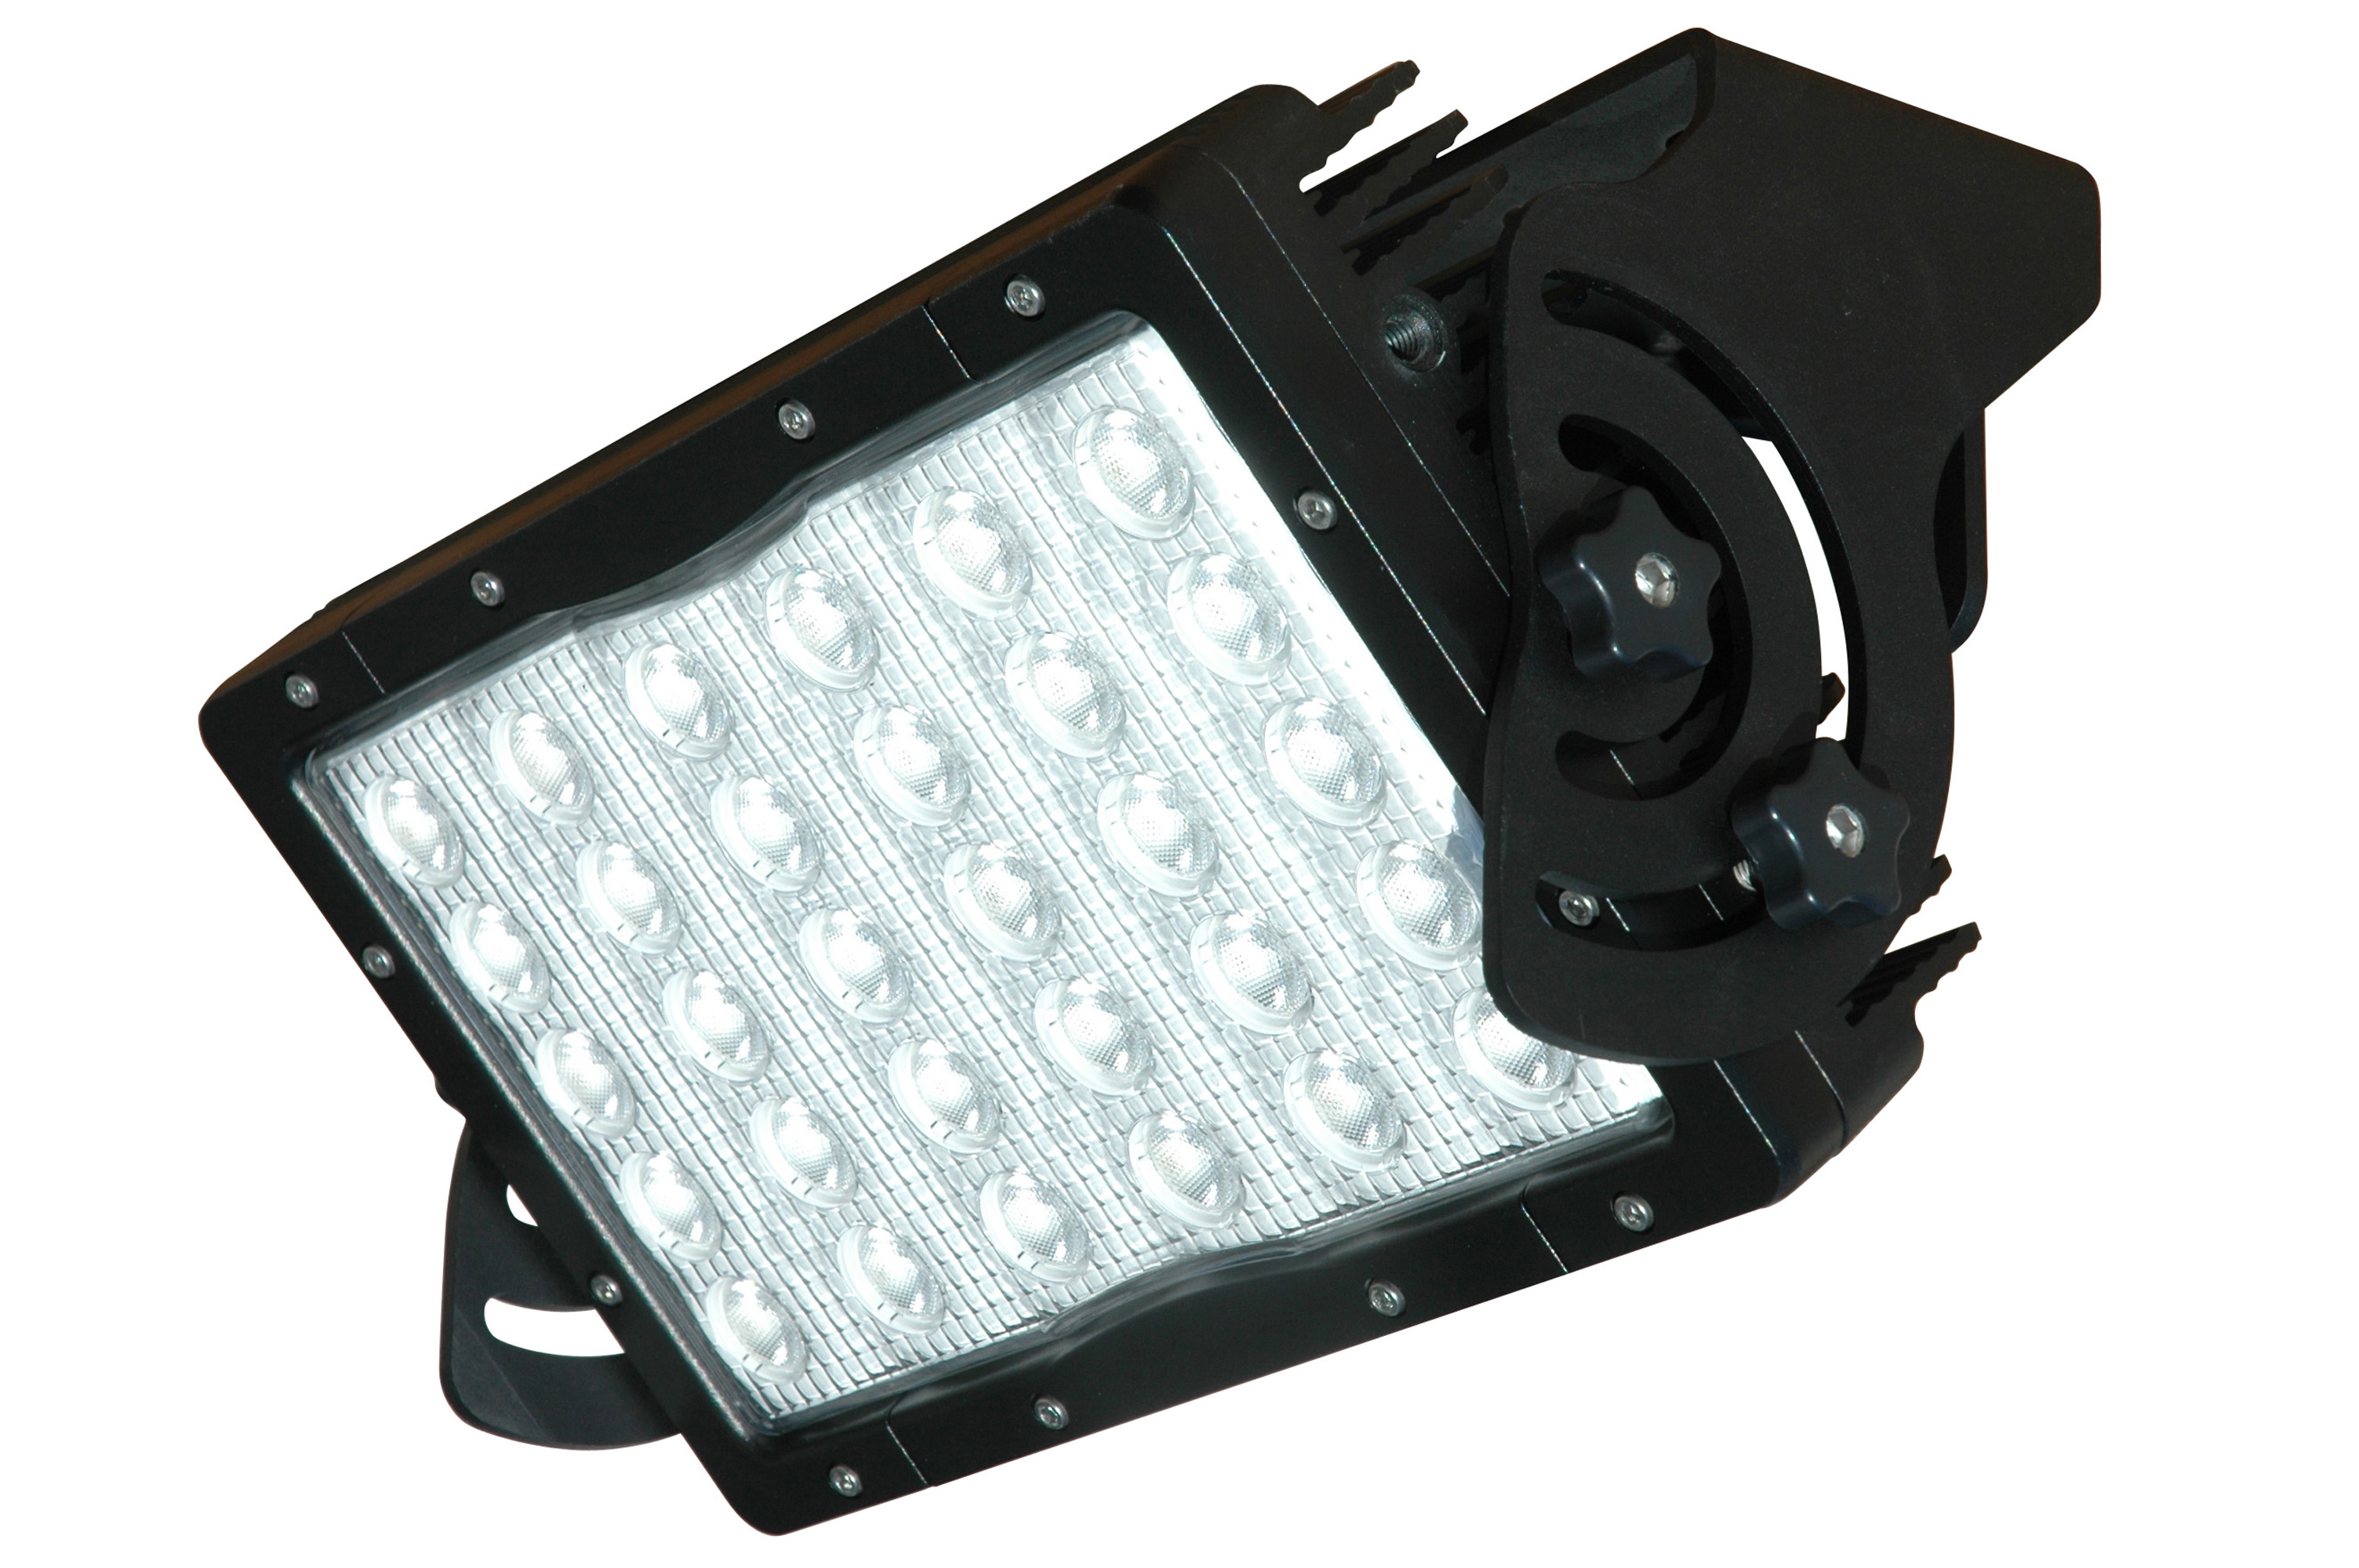 Larson electronics announces release of 150 watt led high bay light led alternative to 400 watt metal halide high bay fixturesled alternative to 400 watt metal halide high bay fixtures arubaitofo Images